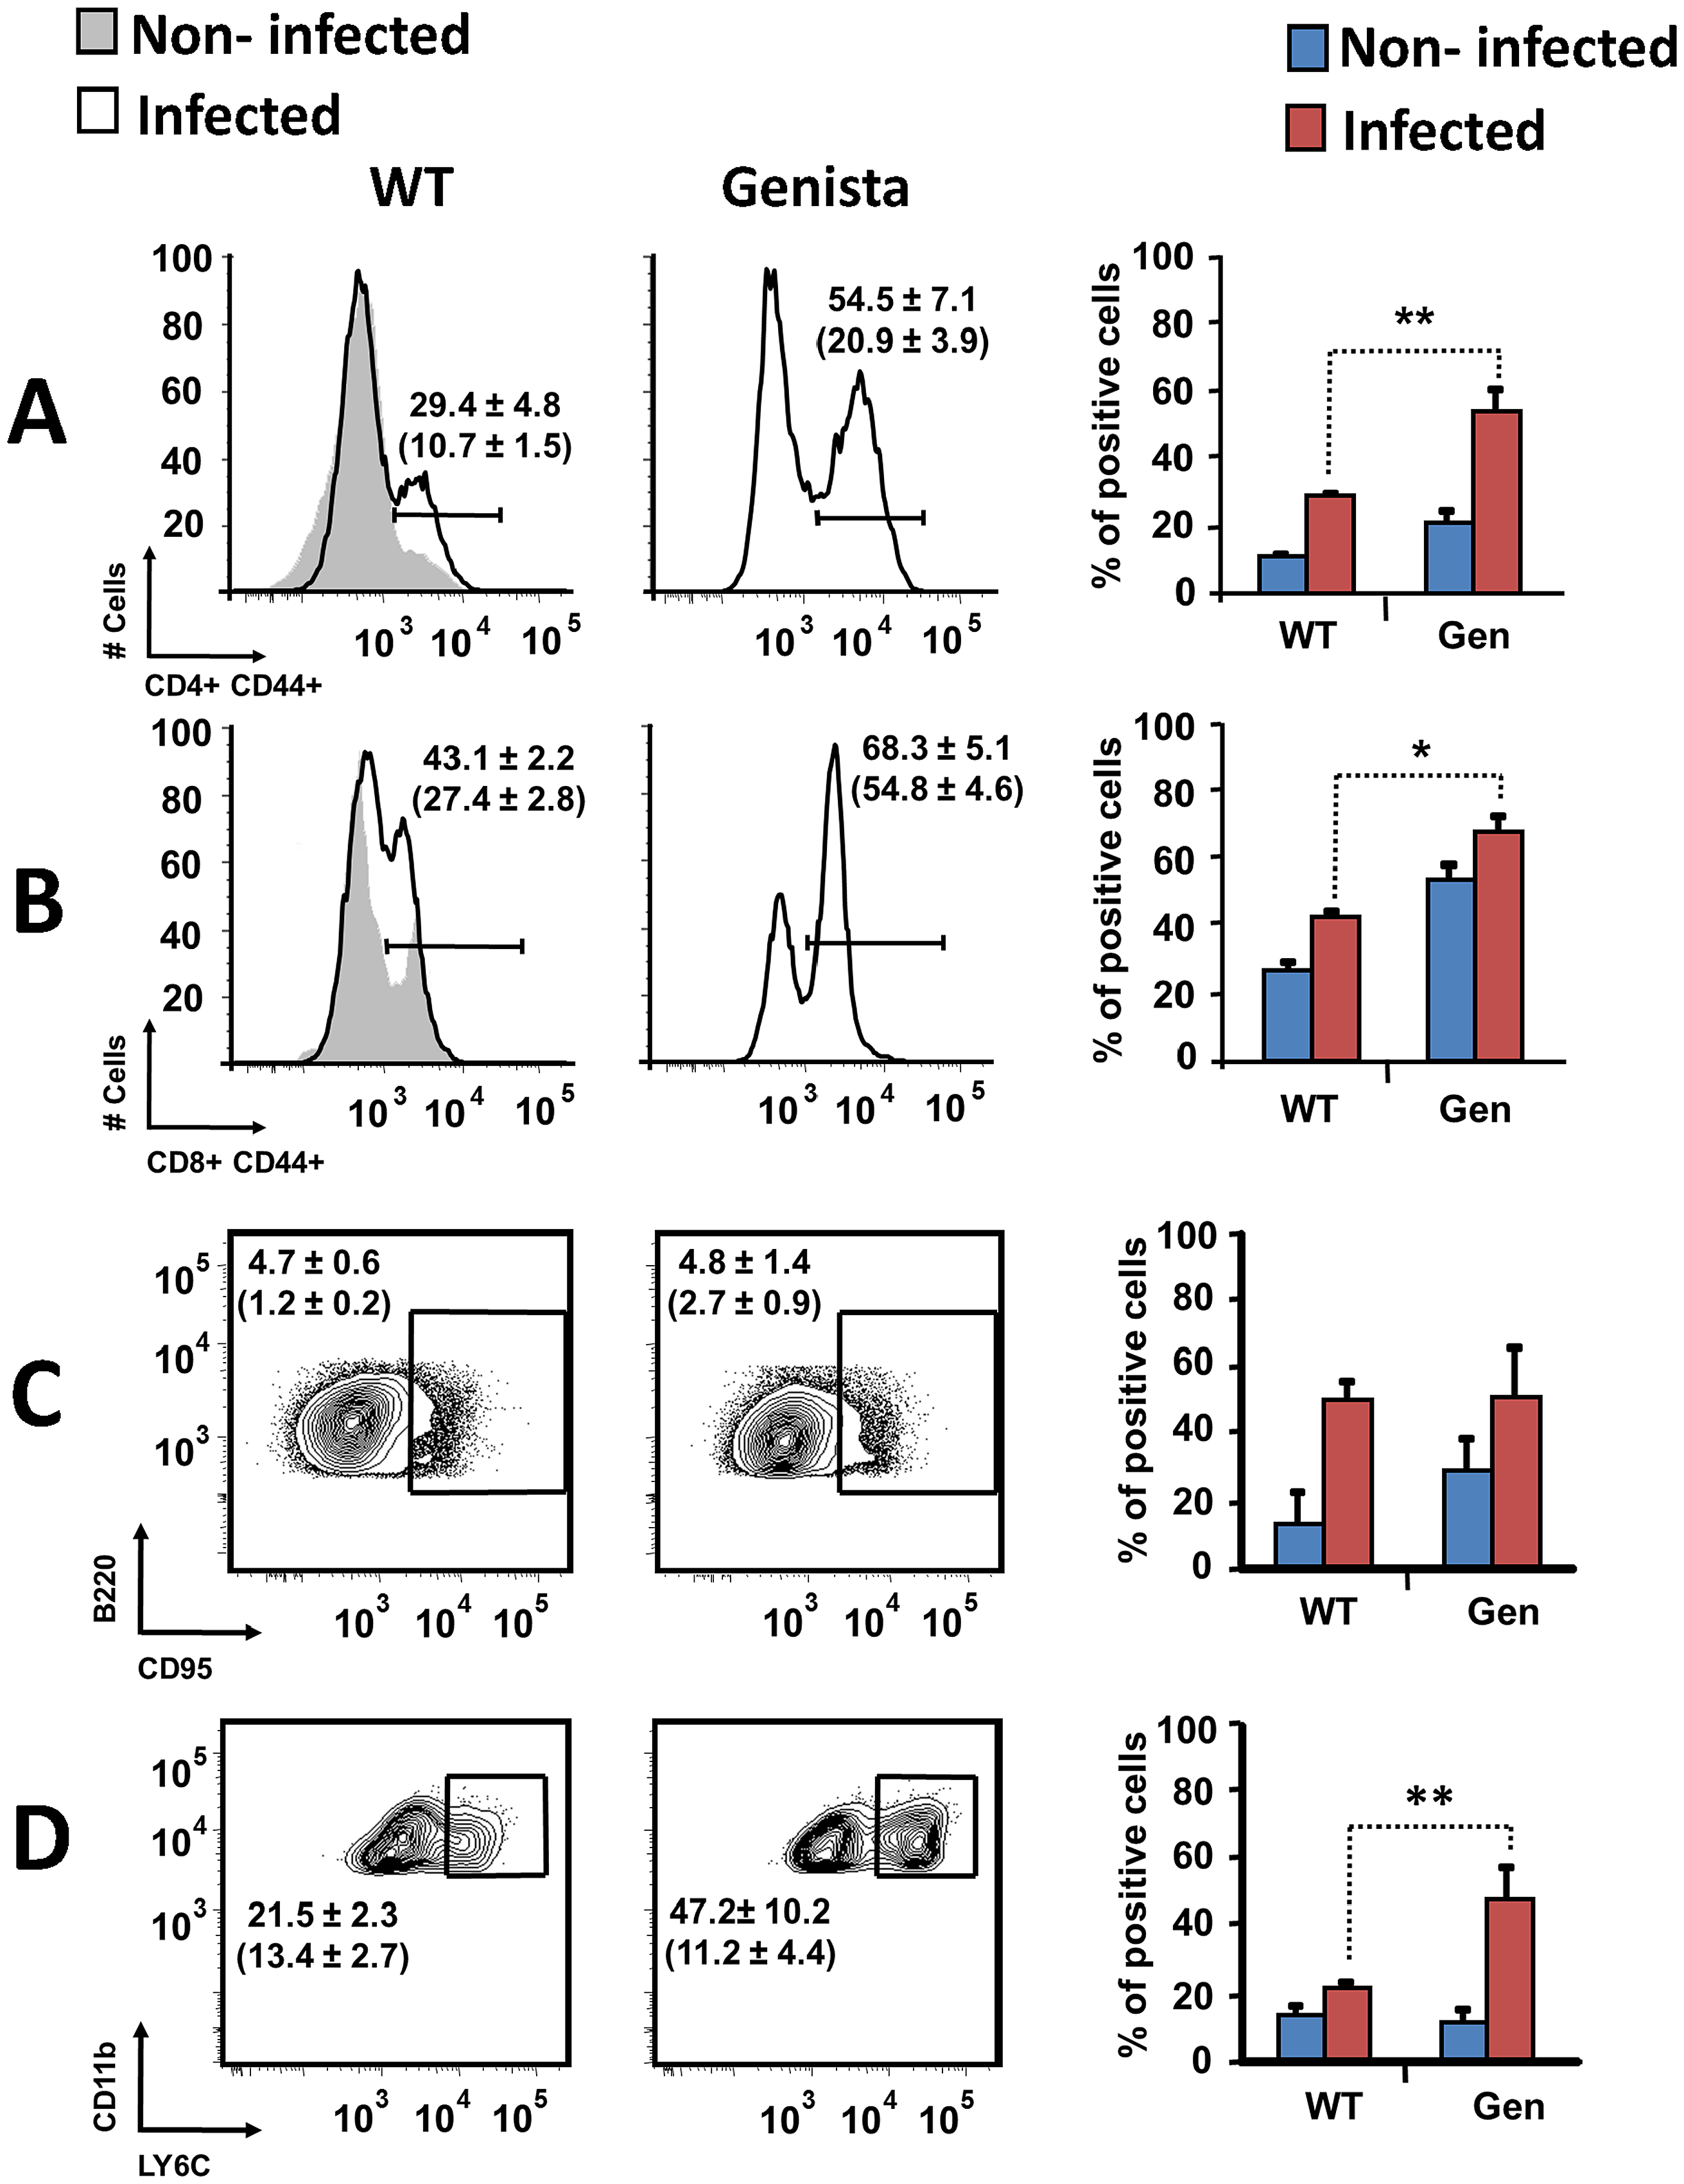 Activation of T and B lymphocytes and recruitment of monocytes in WT and Genista mice at 15 days post-infection.